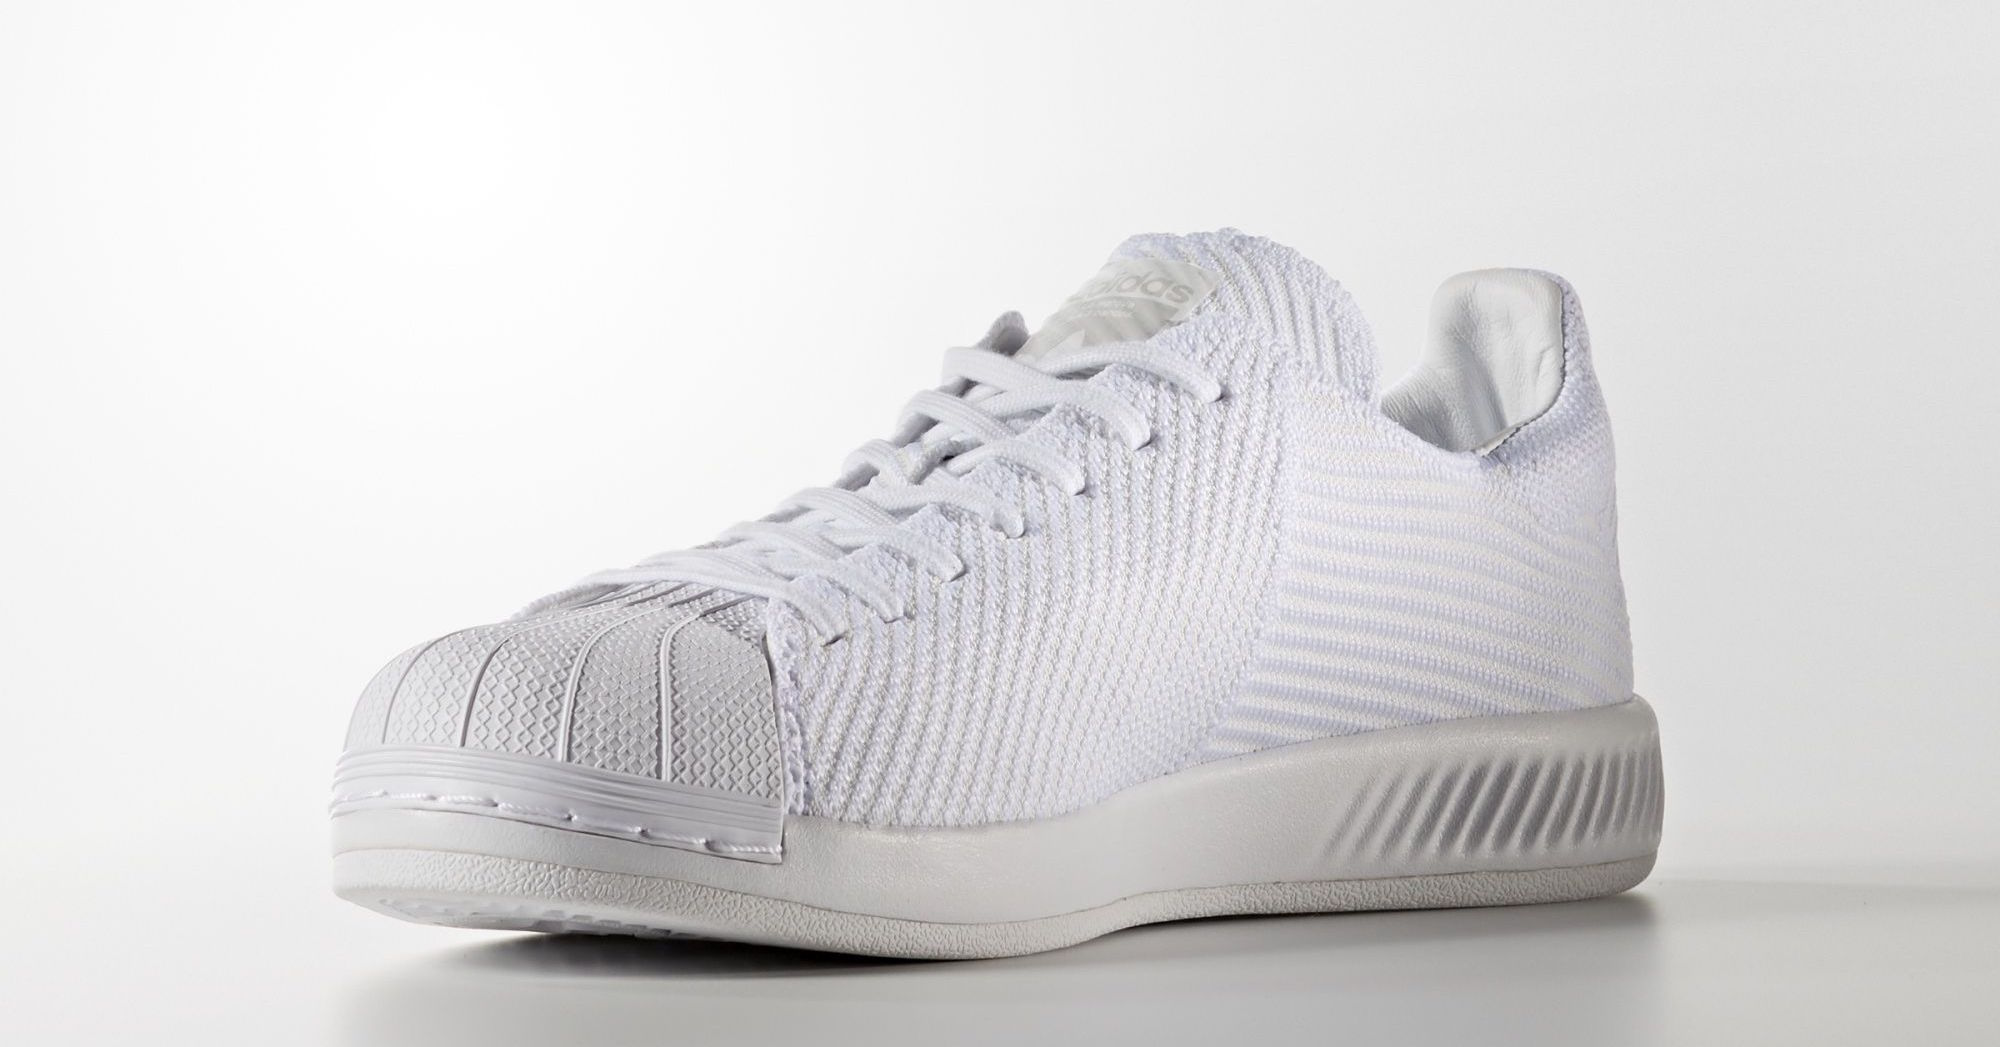 9e58827a4 ... Bounce Shoes Ice Purple Footwear White BB2293 adidas superstar  primeknit review ...